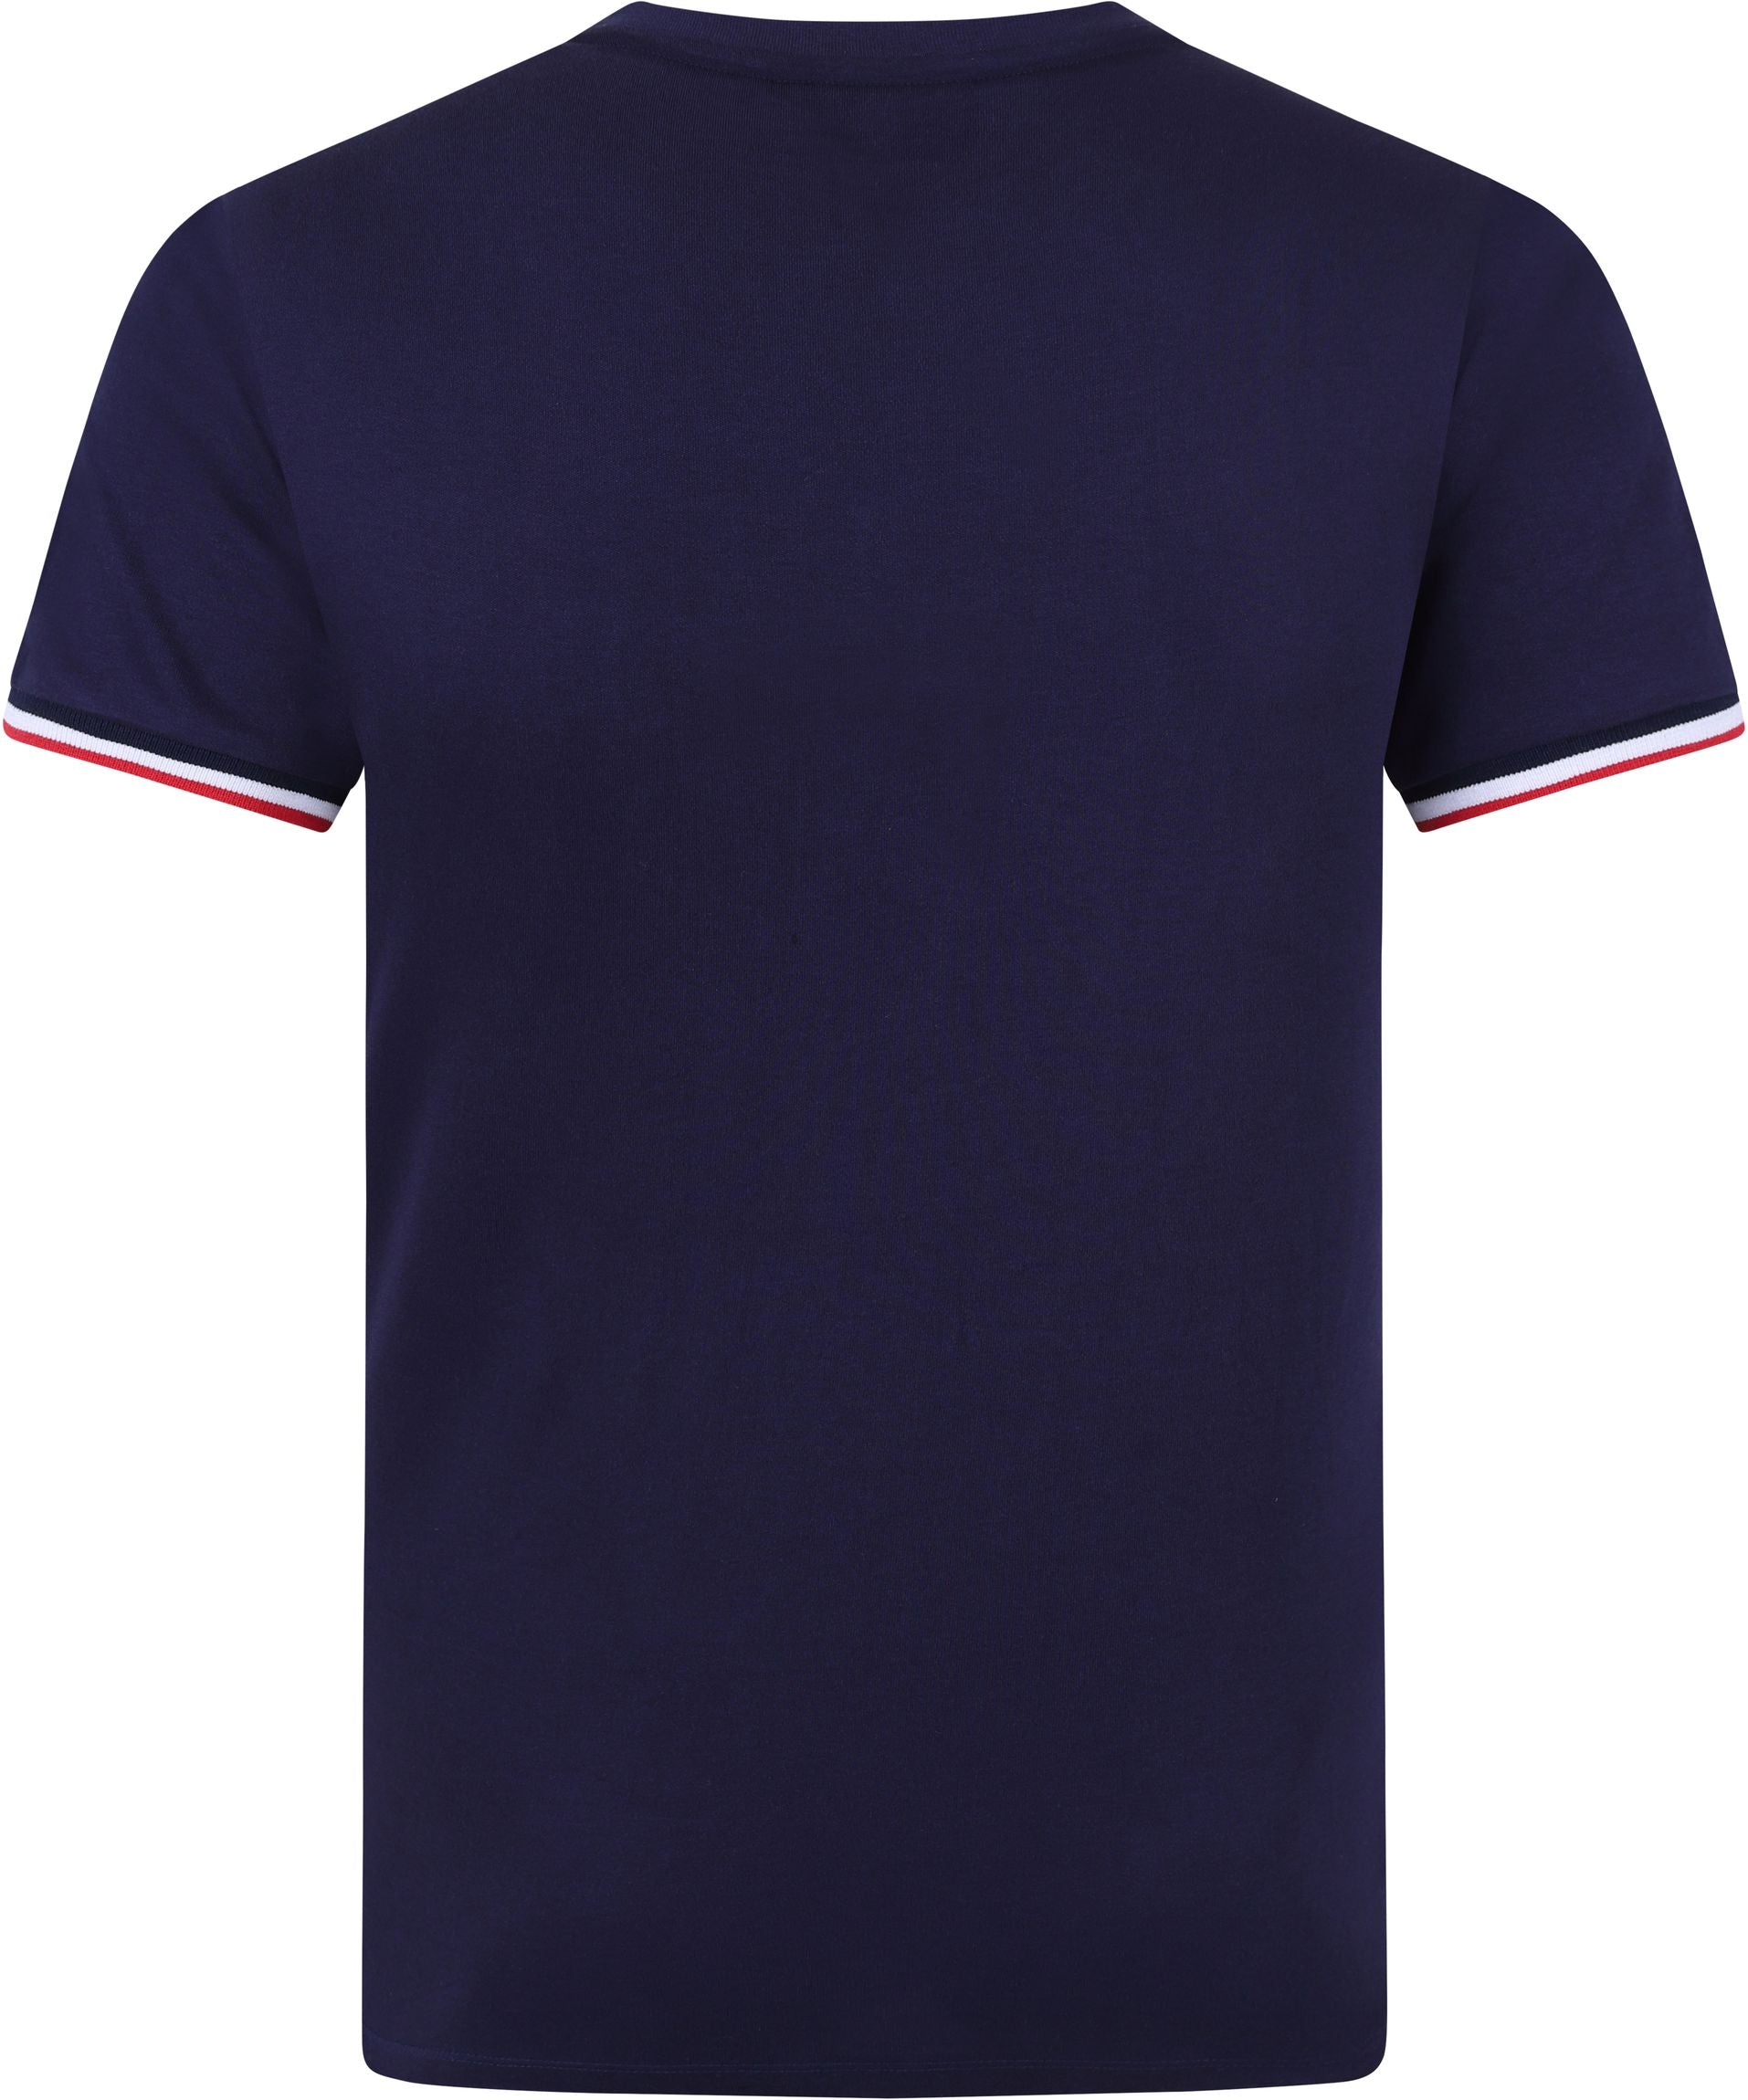 Fila-T-Shirts-amp-Tops-Assorted-Fit-Styles thumbnail 5